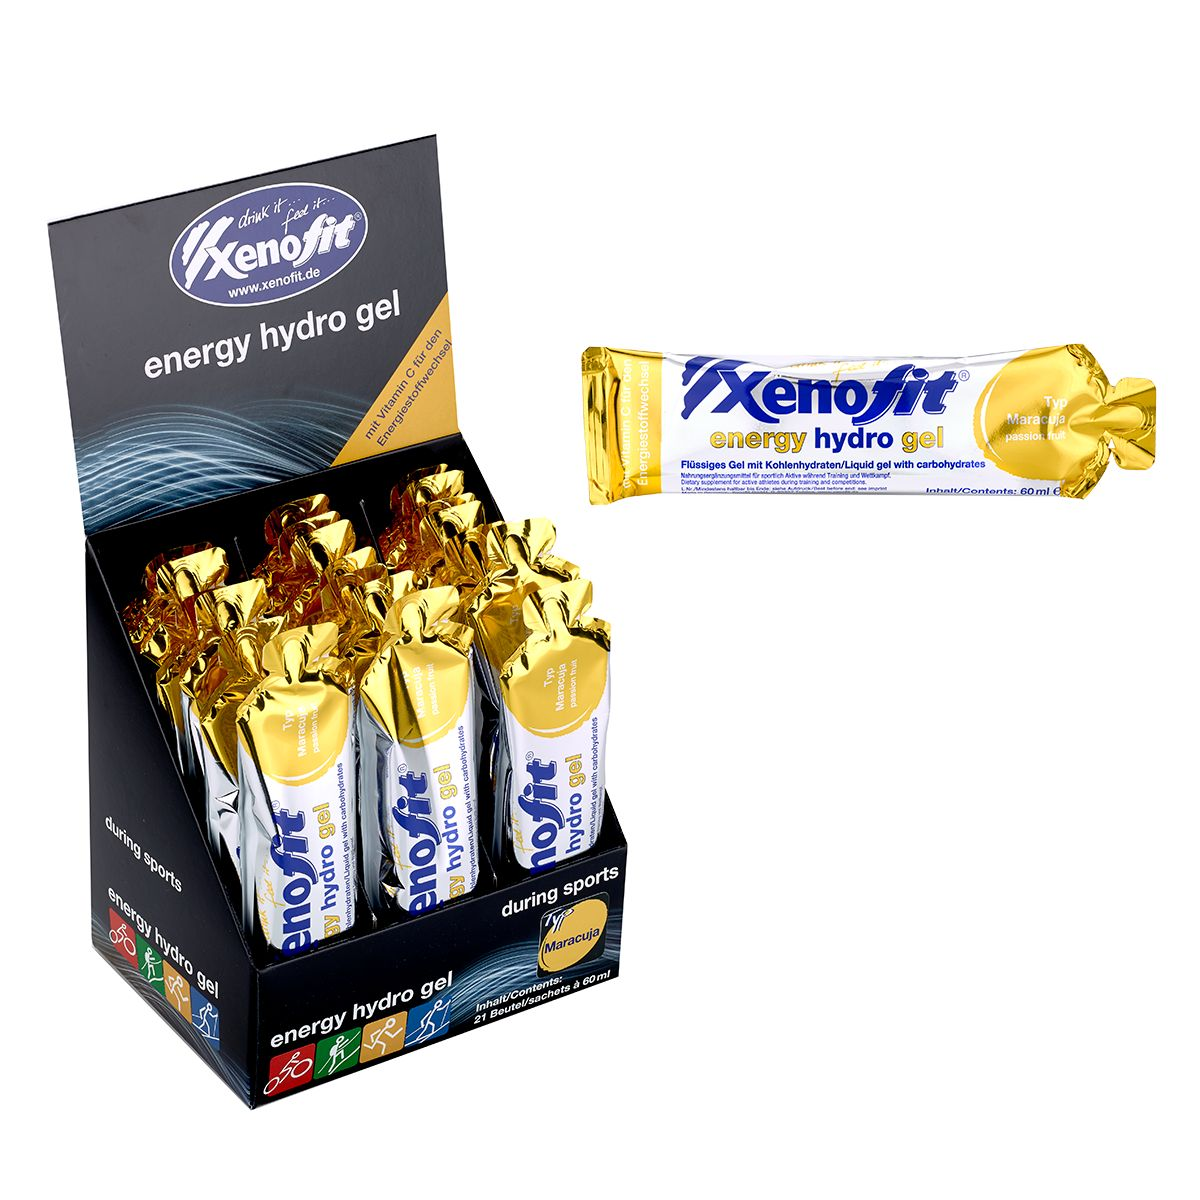 Xenofit carbohydrate gel drink | item_misc